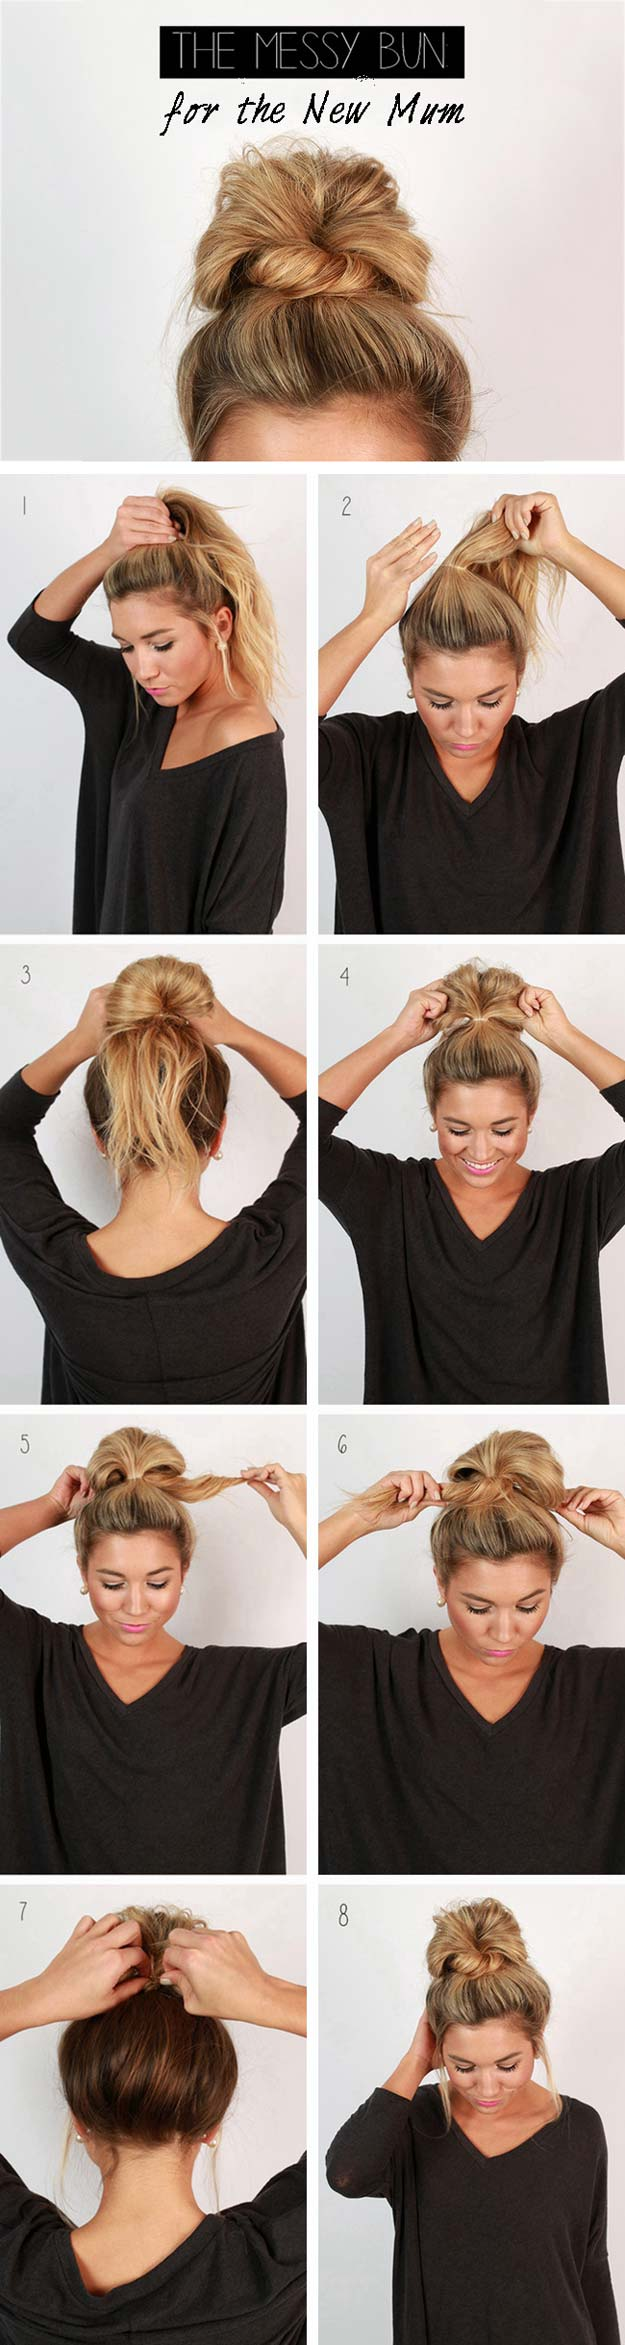 12 Cute and Easy Hairstyles that Can Be Done in a Few ...